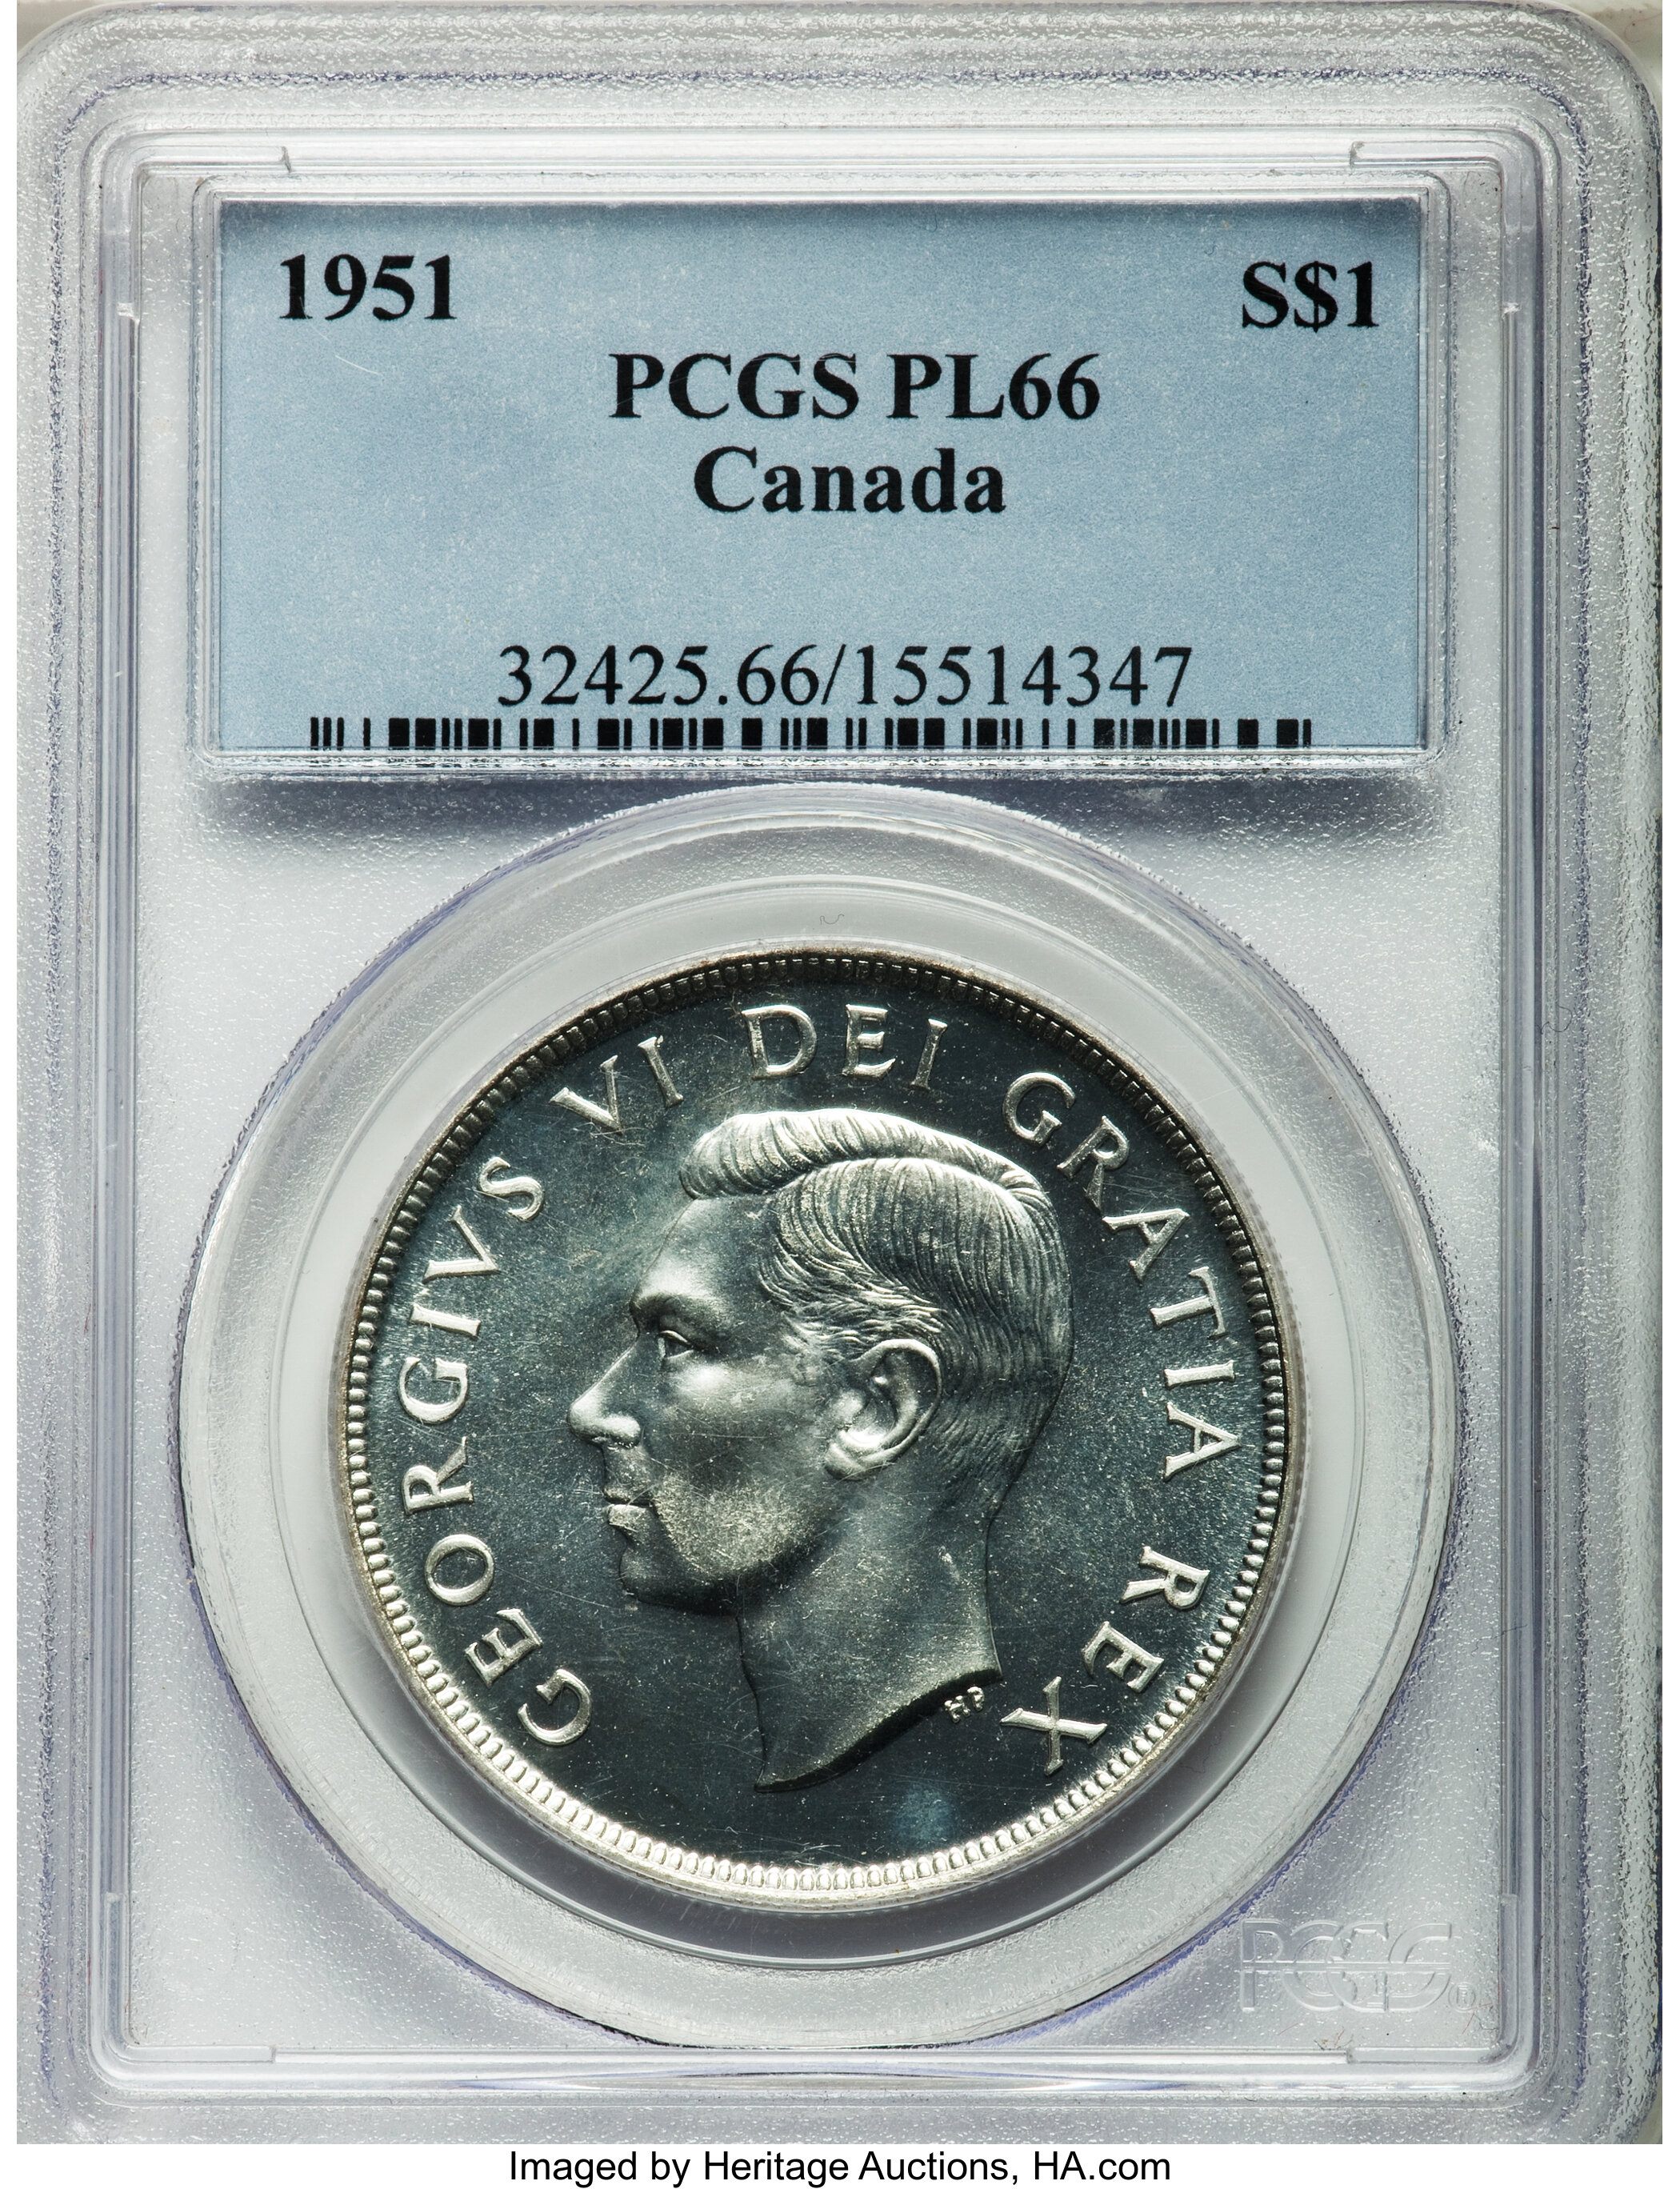 sample image for 1951 Proof Like